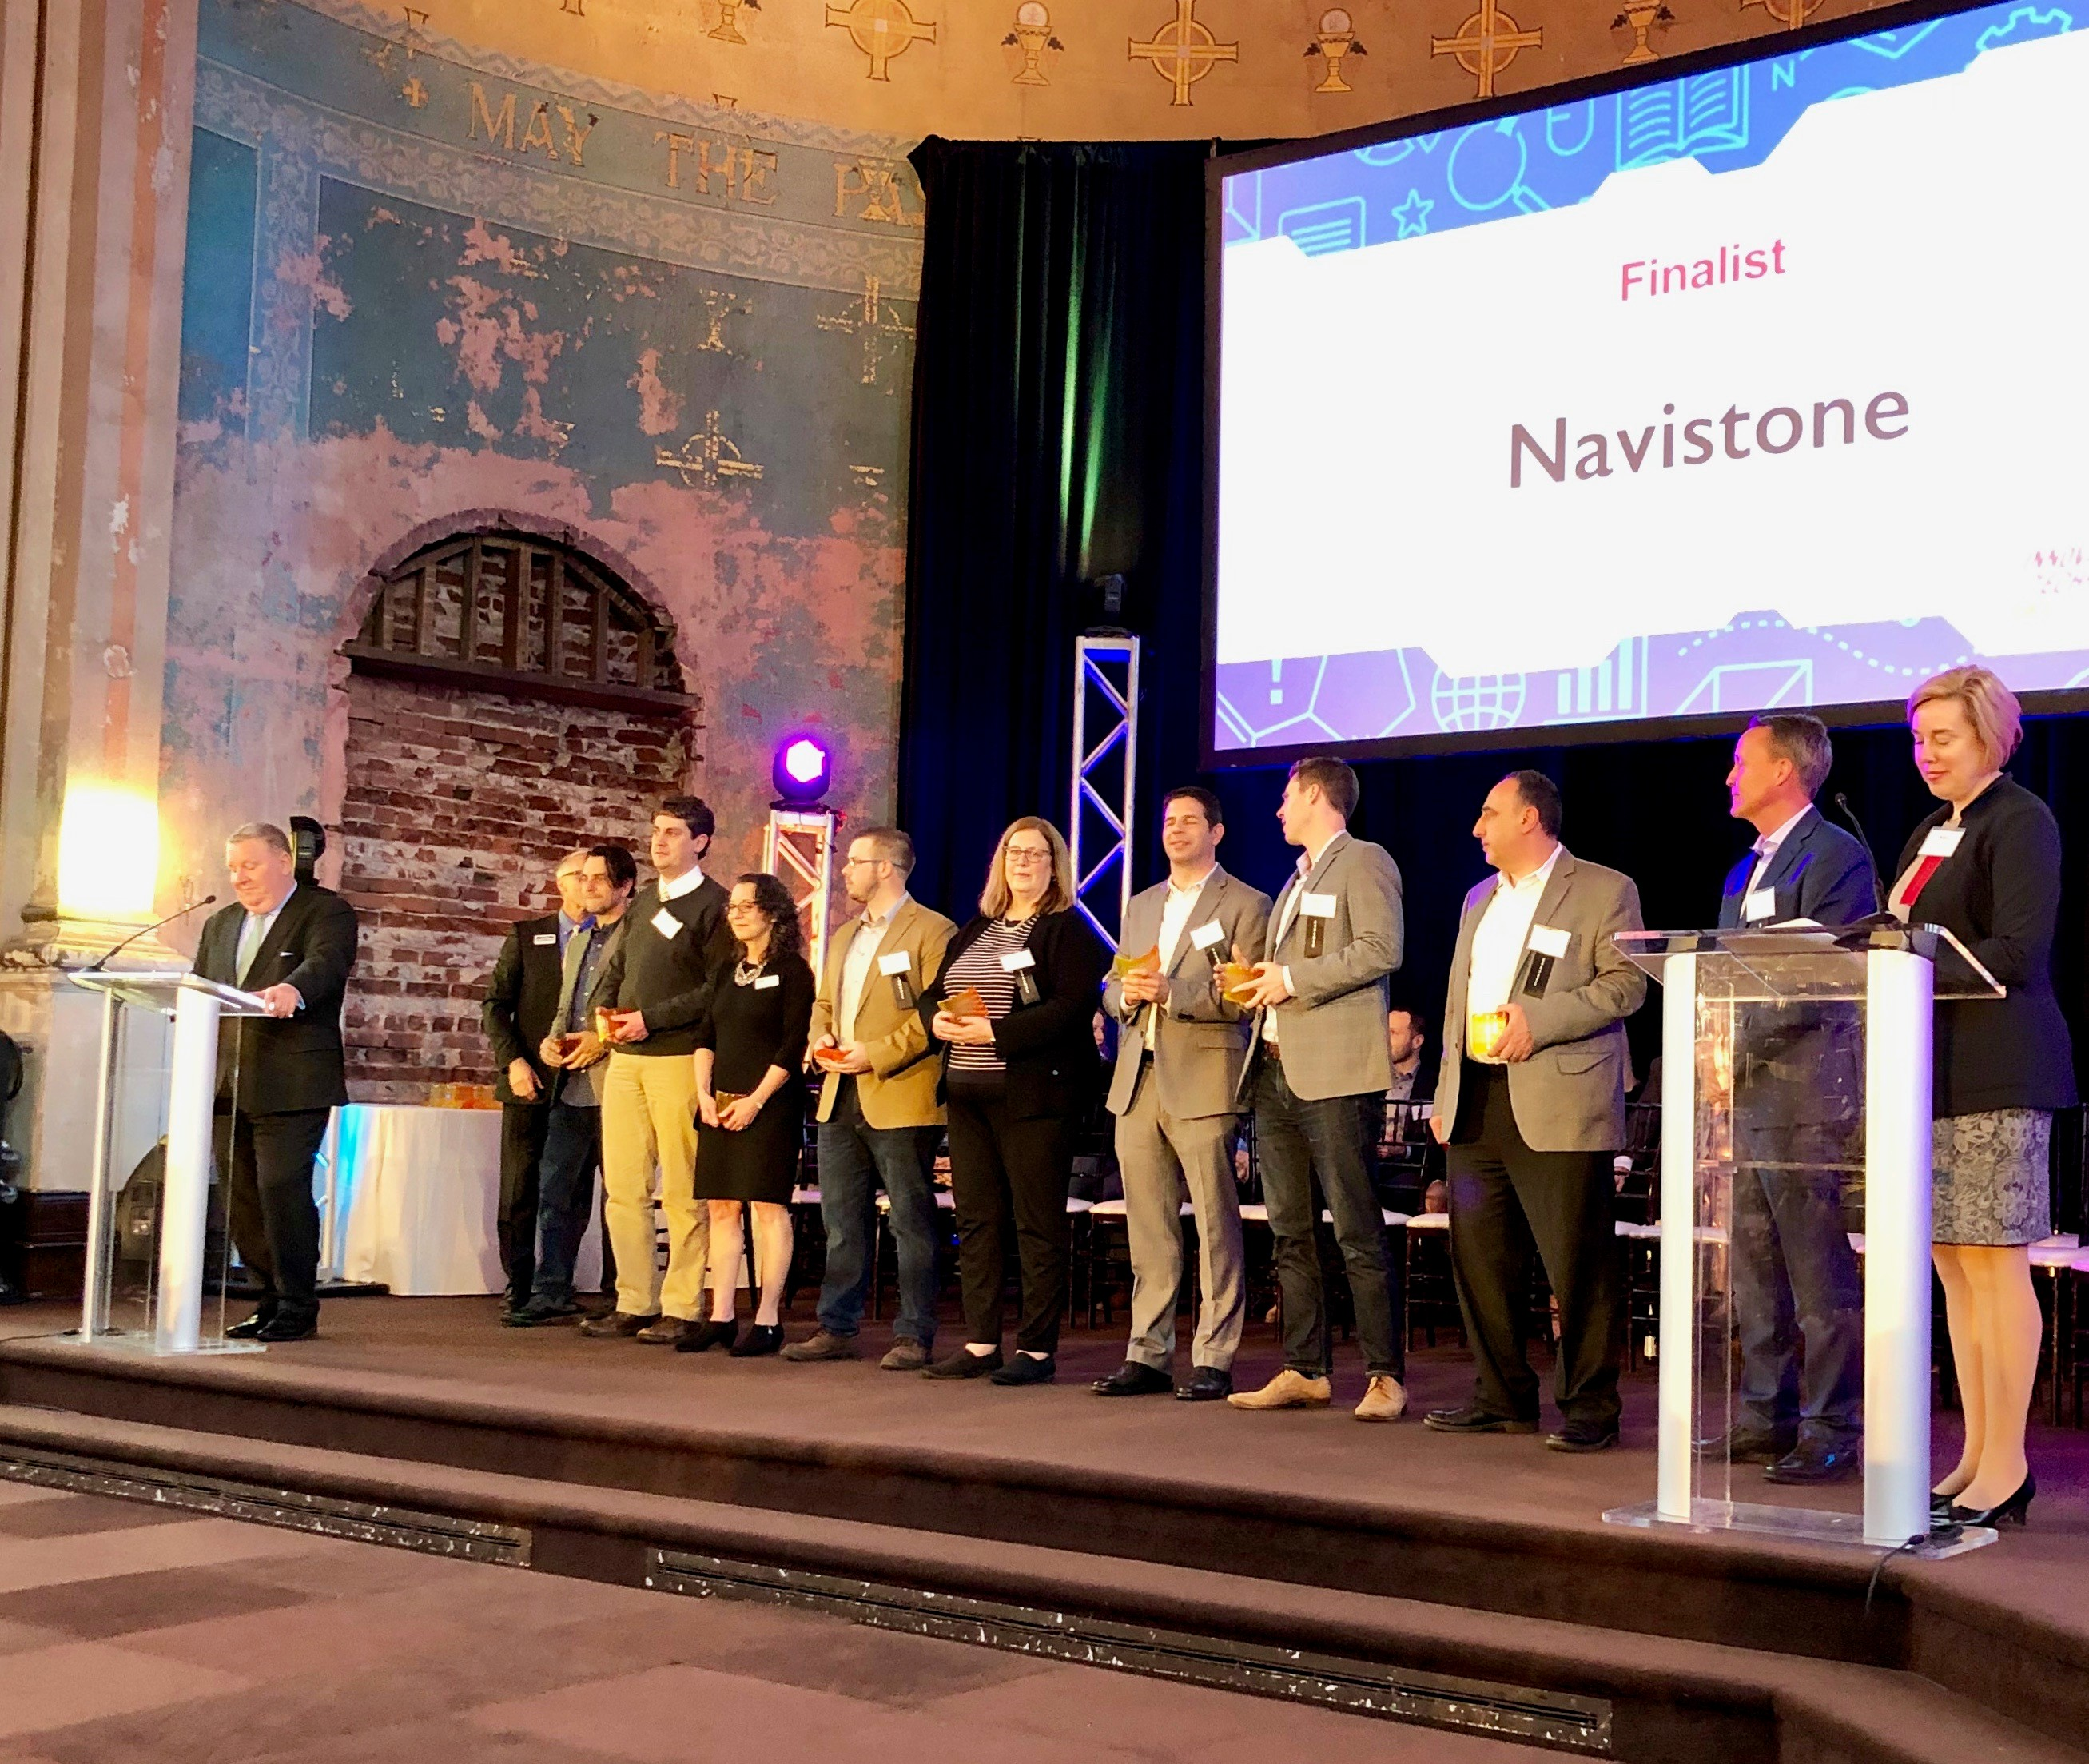 NaviStone Finalist Photo